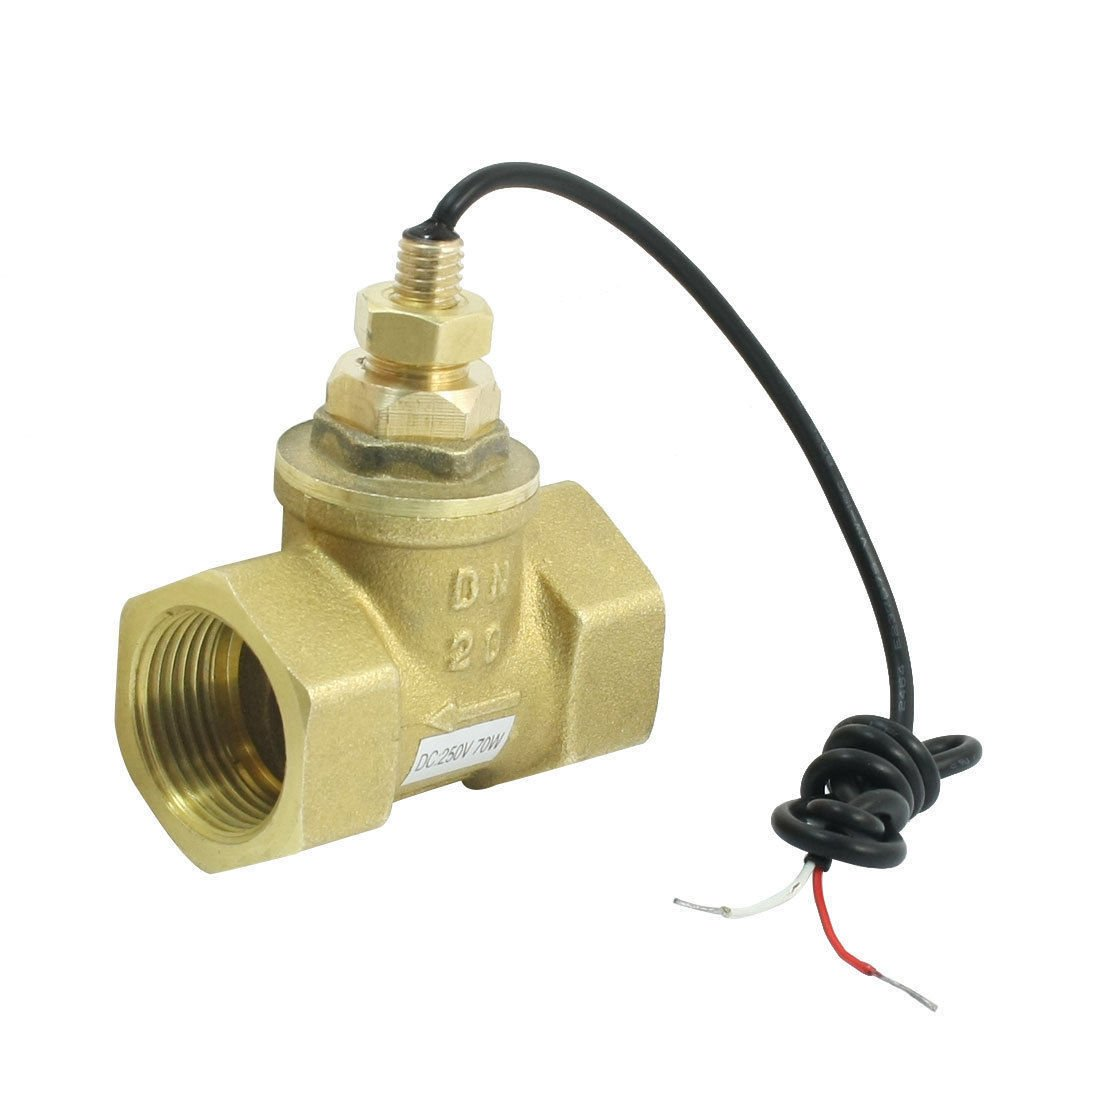 SEN-HS20 1-30L/Min 10mA 70W 3/4PT Female Port Thread Brass Piston Flow Switch